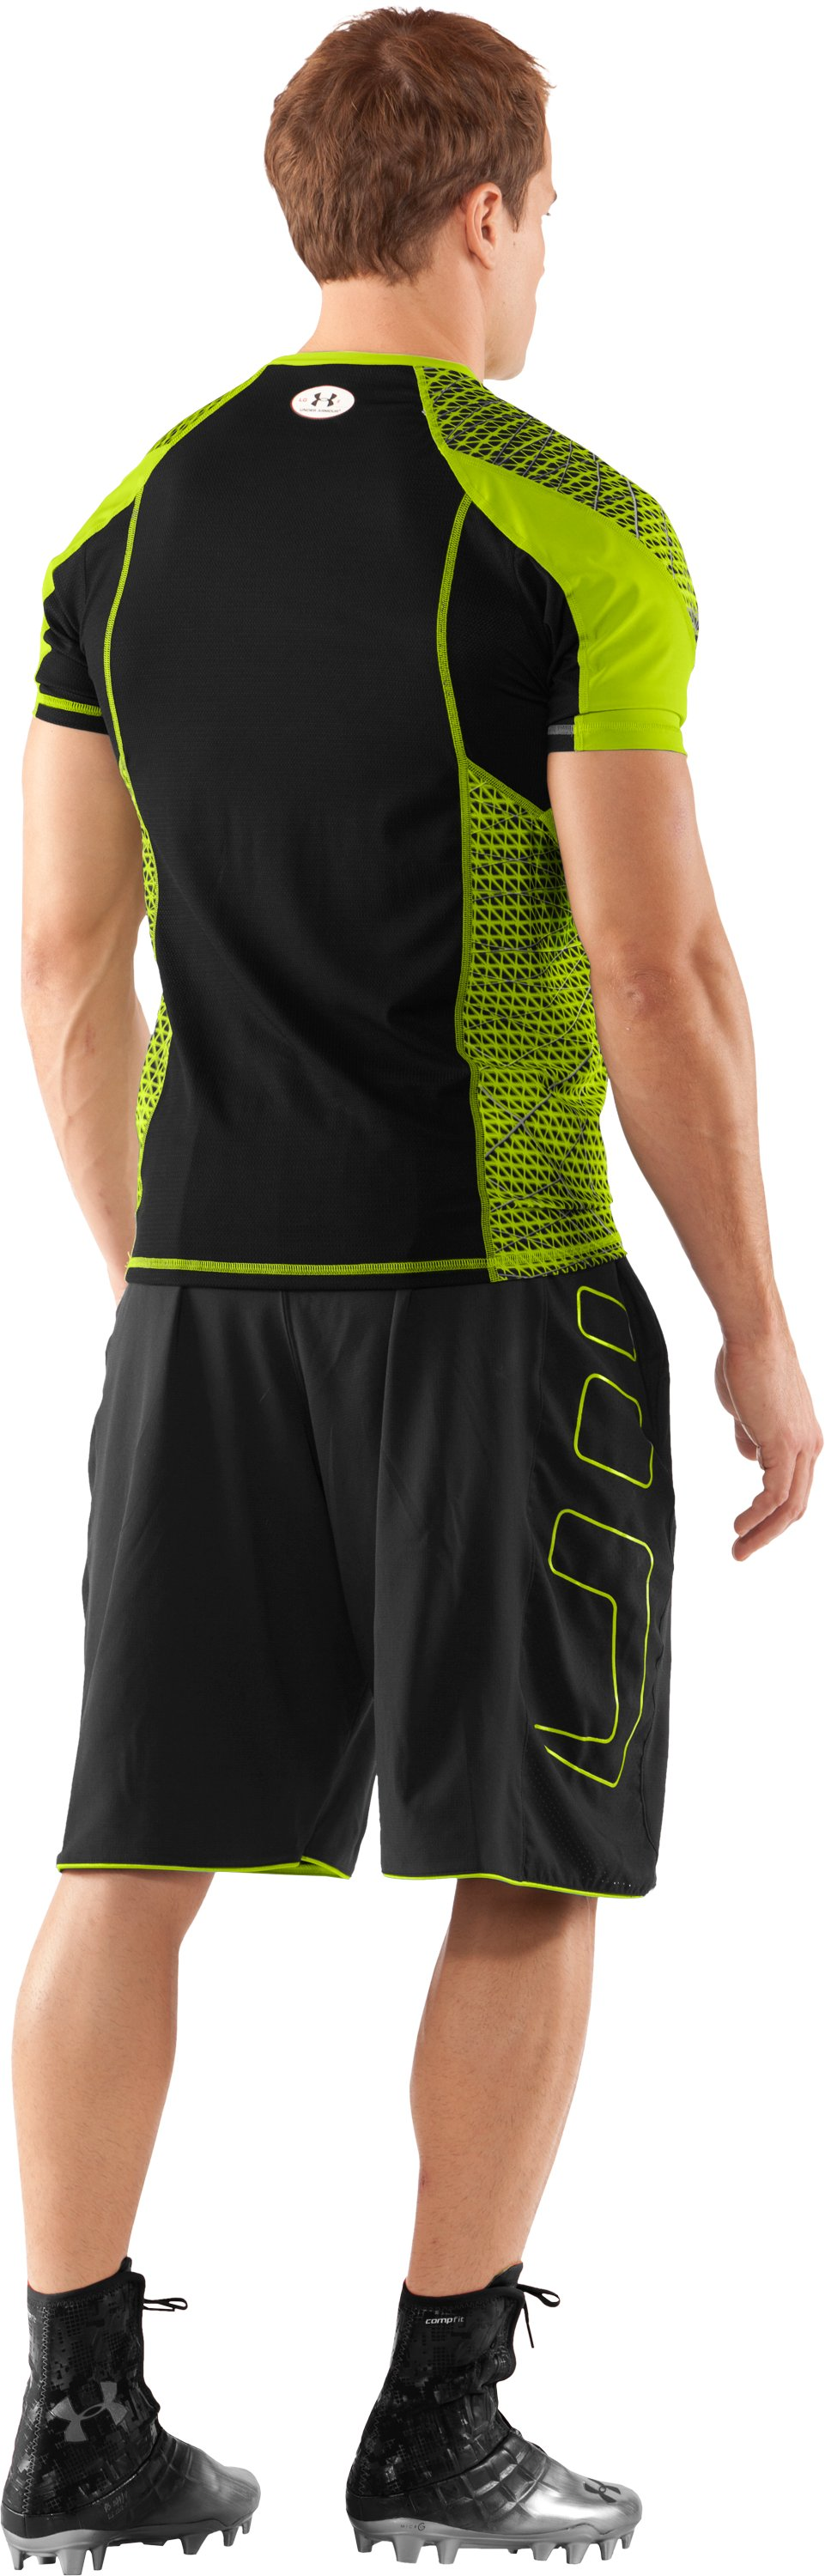 Men's NFL Combine Authentic Warp Speed Fitted Short Sleeve, Velocity, Back